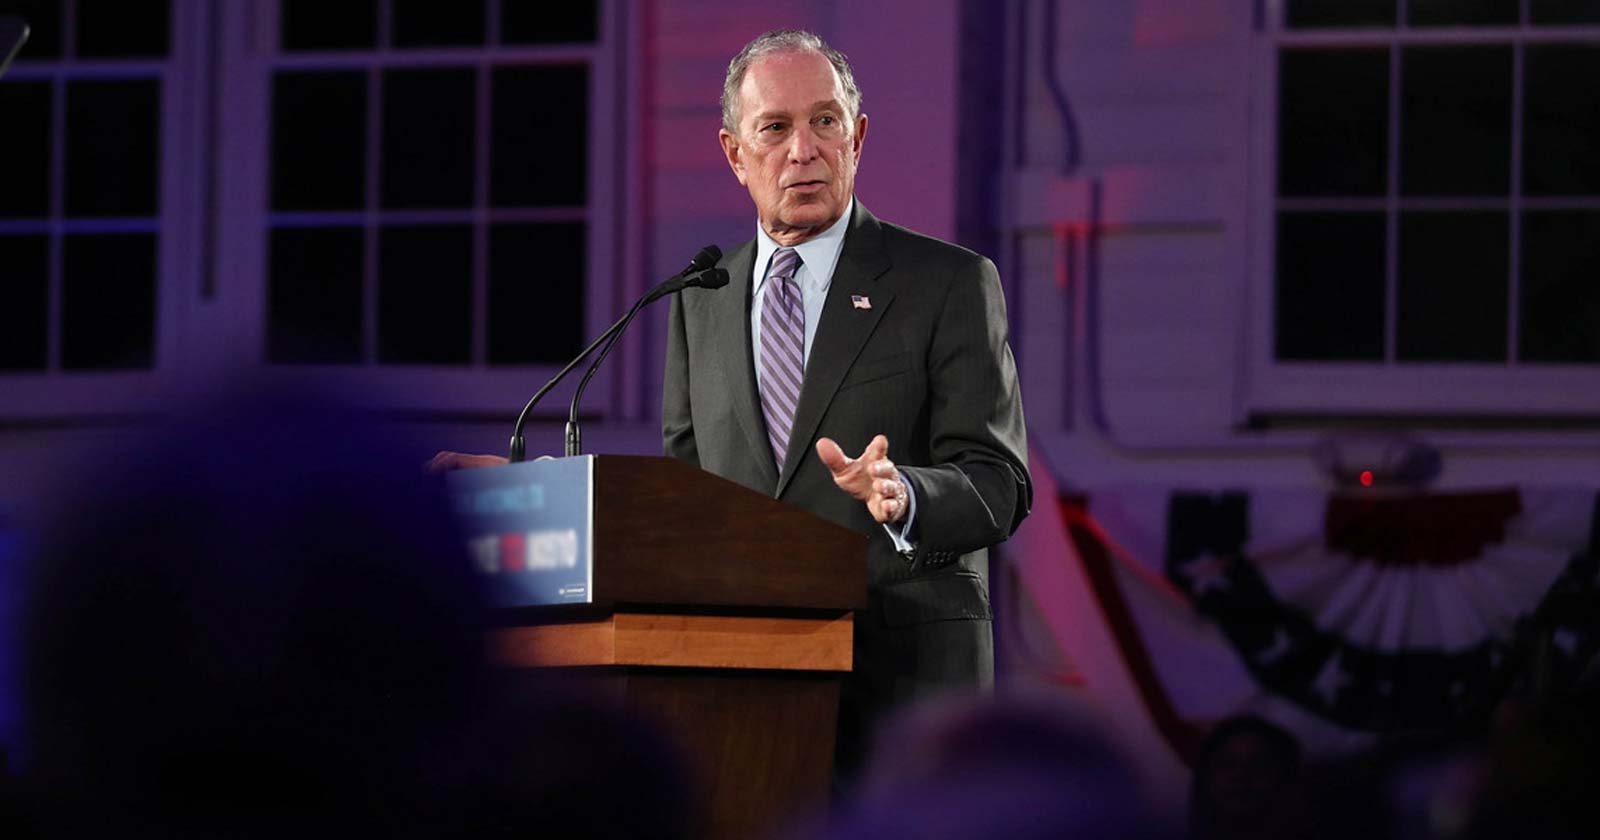 Bloomberg Hiring Social Media Influencers to Shill for Him